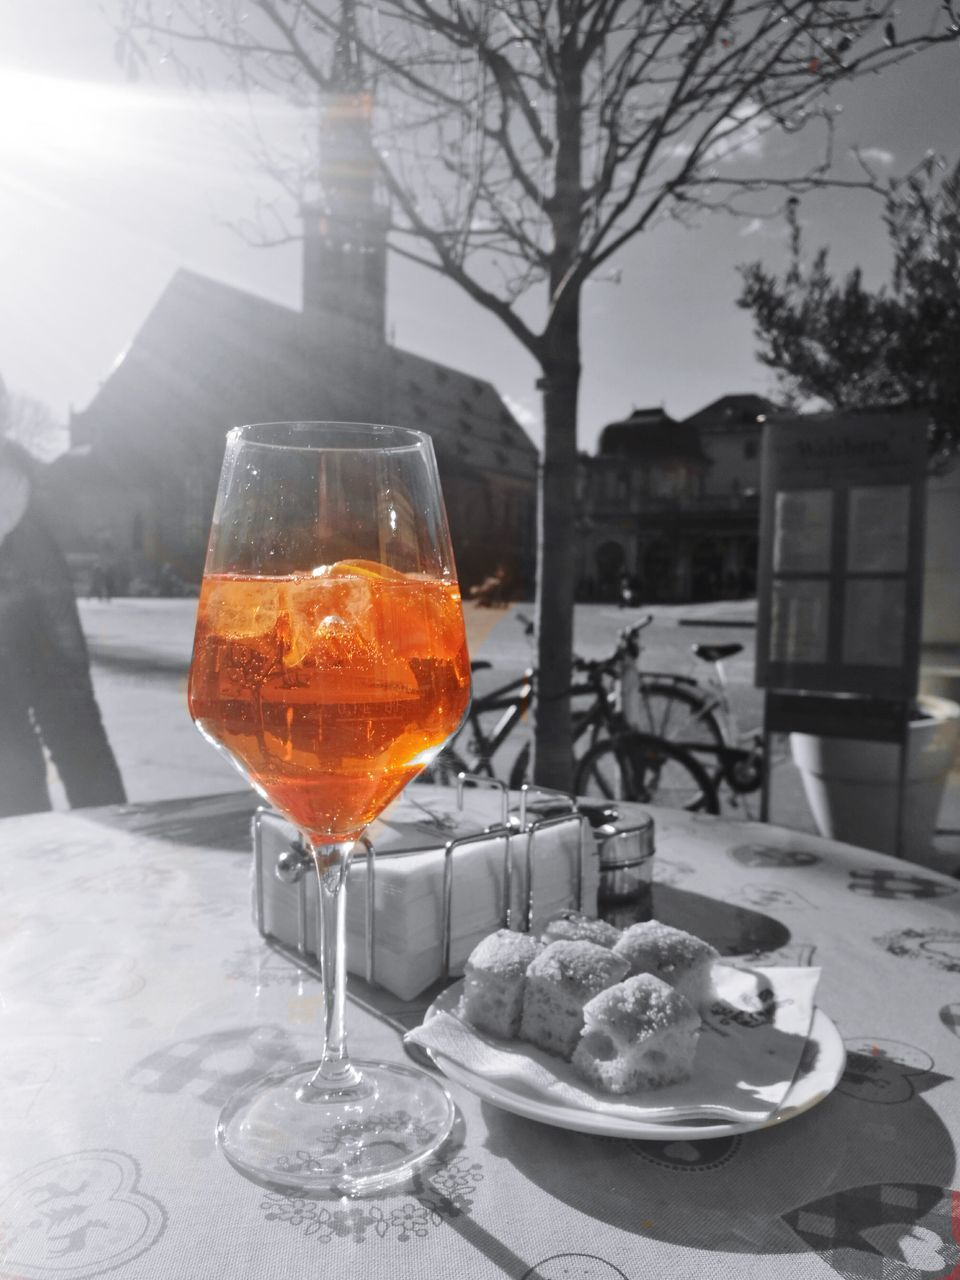 drinking glass, food and drink, table, wineglass, outdoors, drink, cold temperature, focus on foreground, architecture, building exterior, alcohol, no people, refreshment, winter, plate, wine, built structure, tree, food, close-up, day, freshness, sky, ready-to-eat